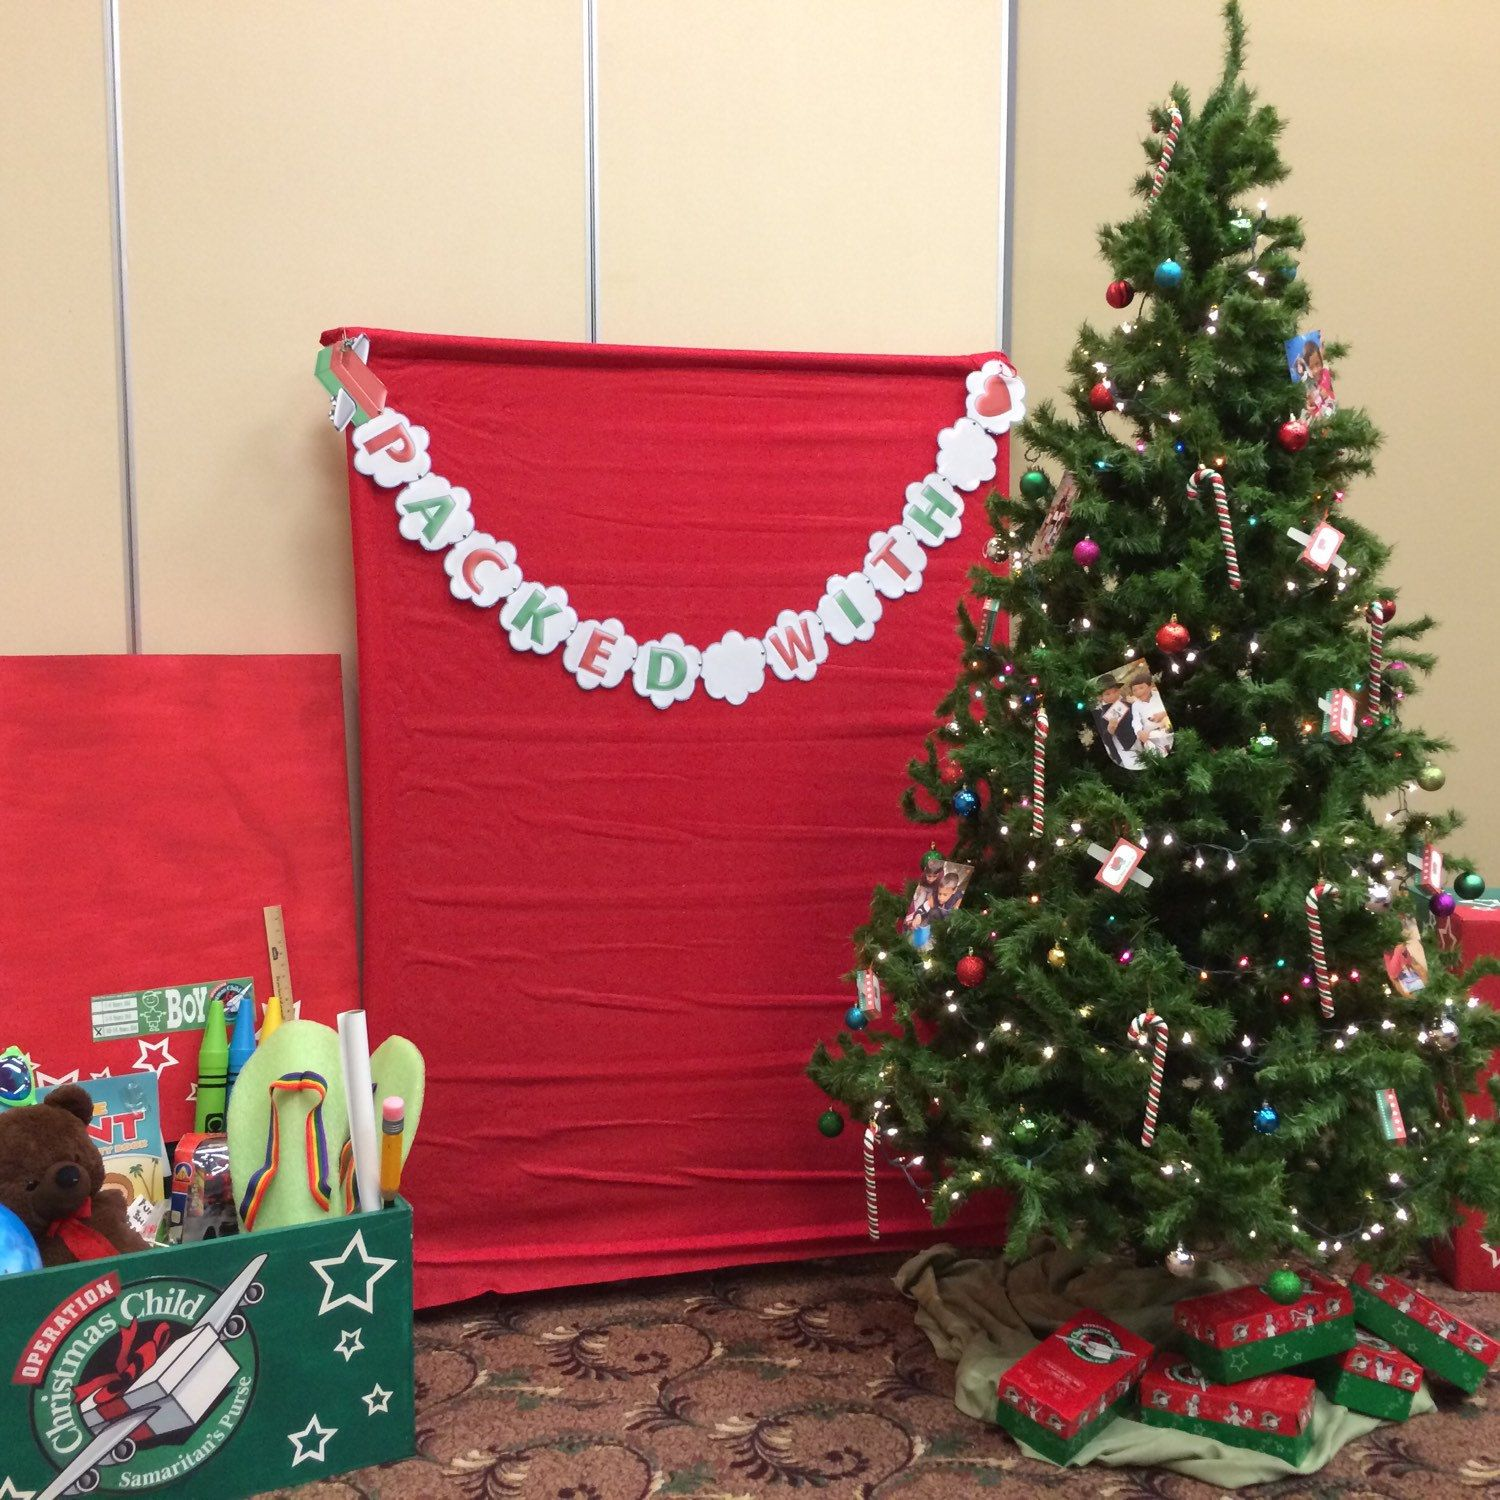 It's In The Bag Christmas Charity Drive Donate To